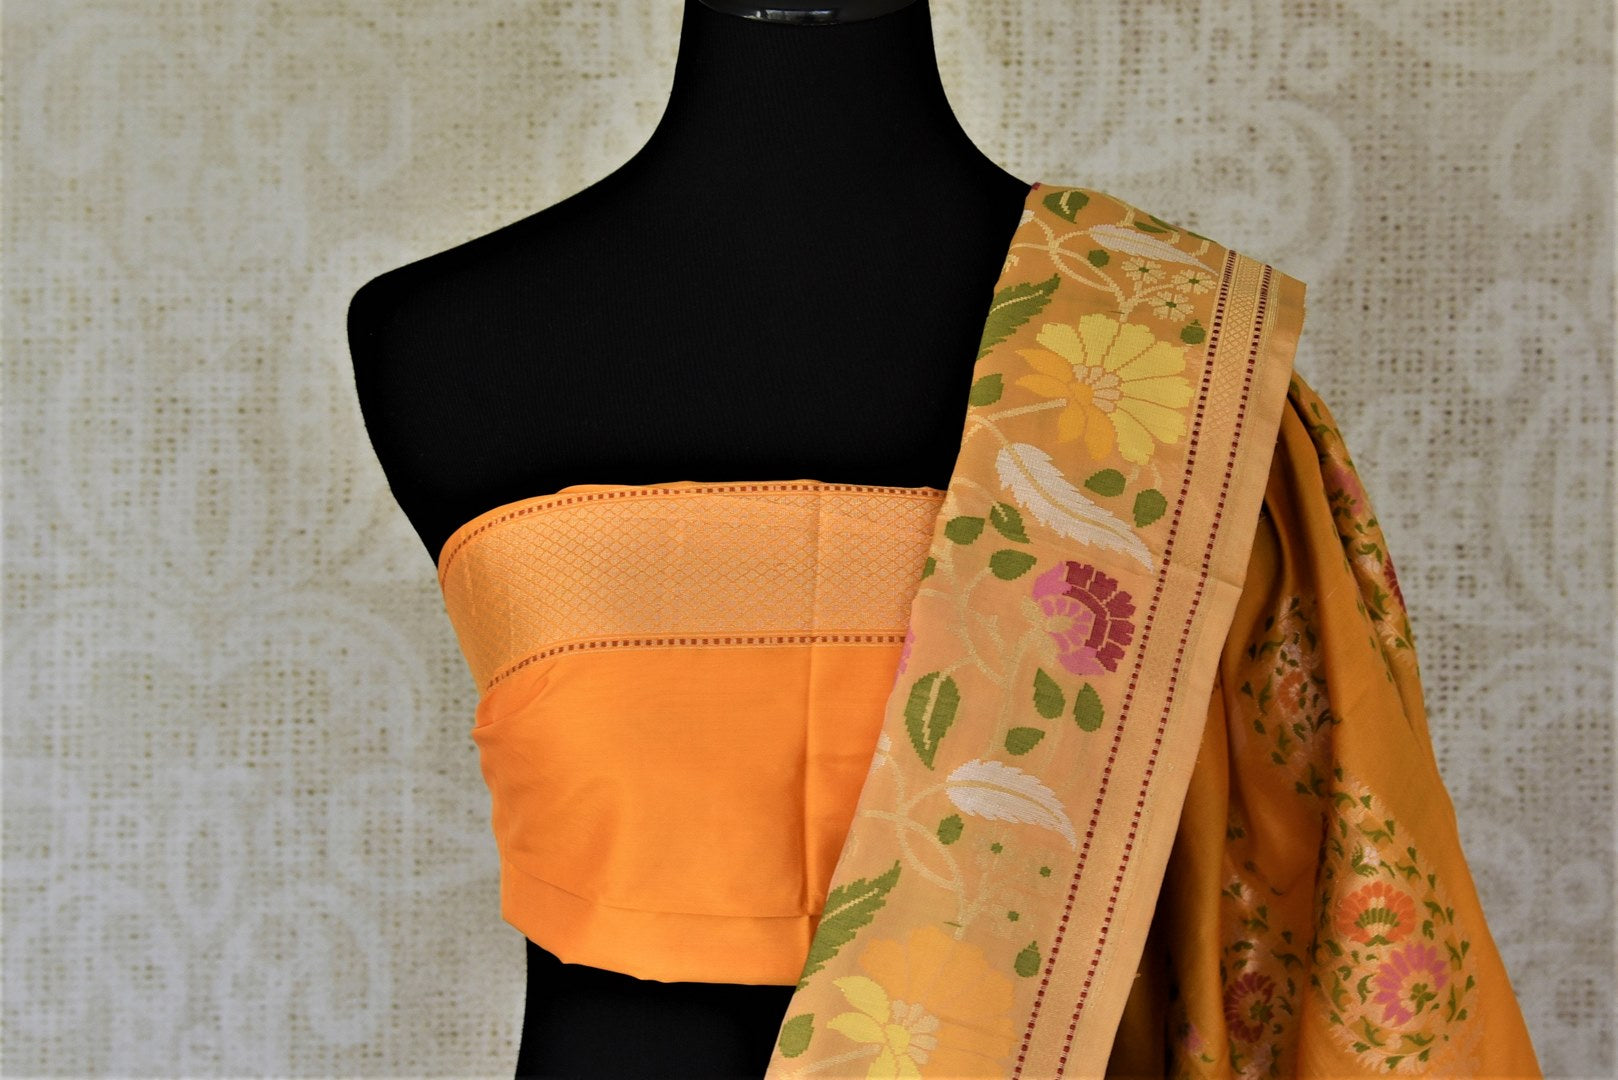 Shop stunning yellow Banarasi silk saree online in USA with zari and minakari floral border. For Indian women in USA, Pure Elegance Indian fashion store brings an exquisite collection Banarasi sarees, Banarasi silk sarees, tussar sarees, zari work sarees, pure silk sarees all under one roof. Shop online now.-blouse pallu